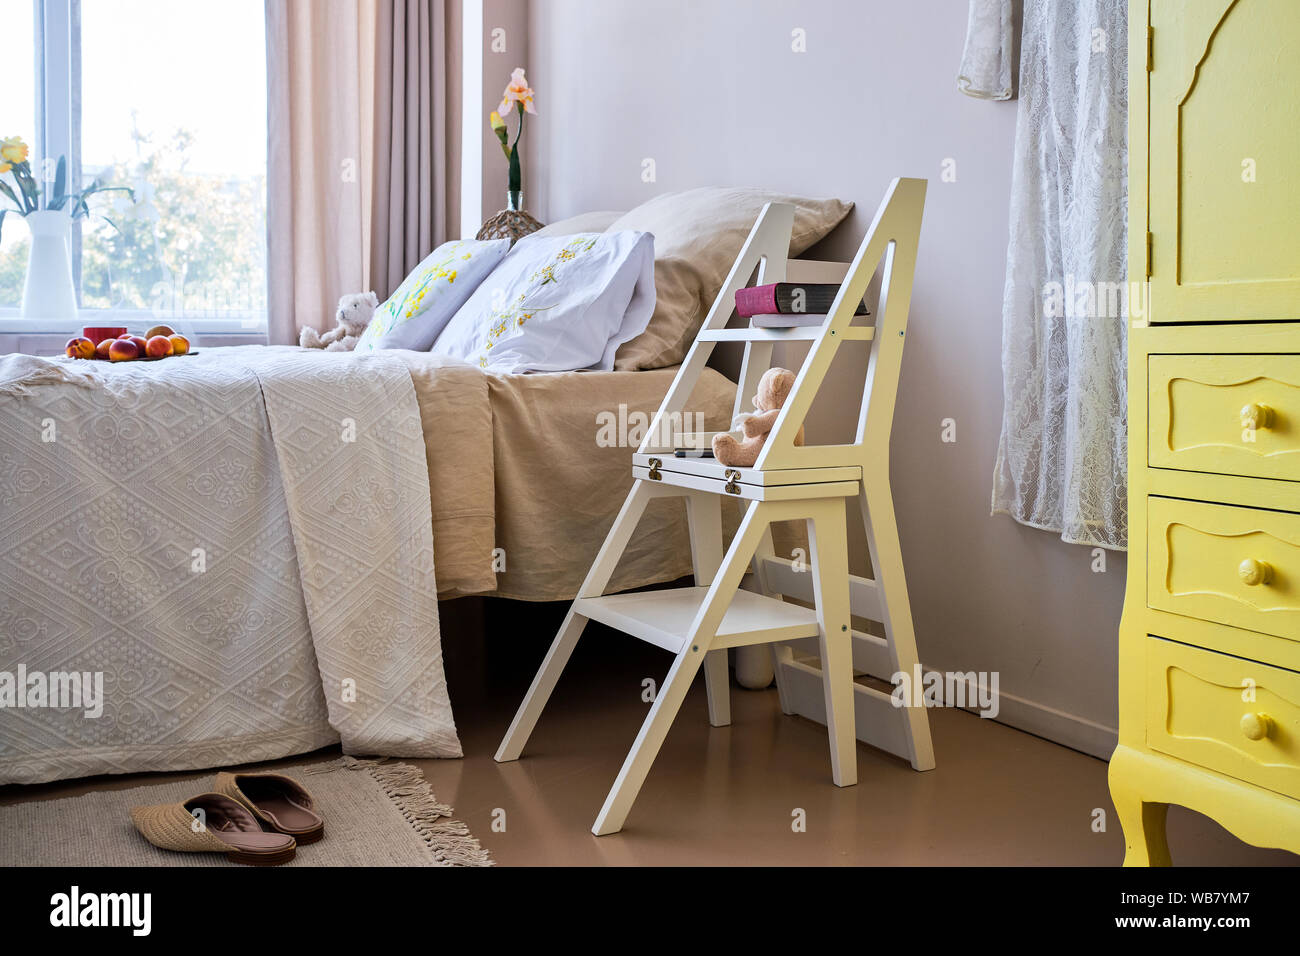 Use of folding stepladder chair in bedroom Stock Photo